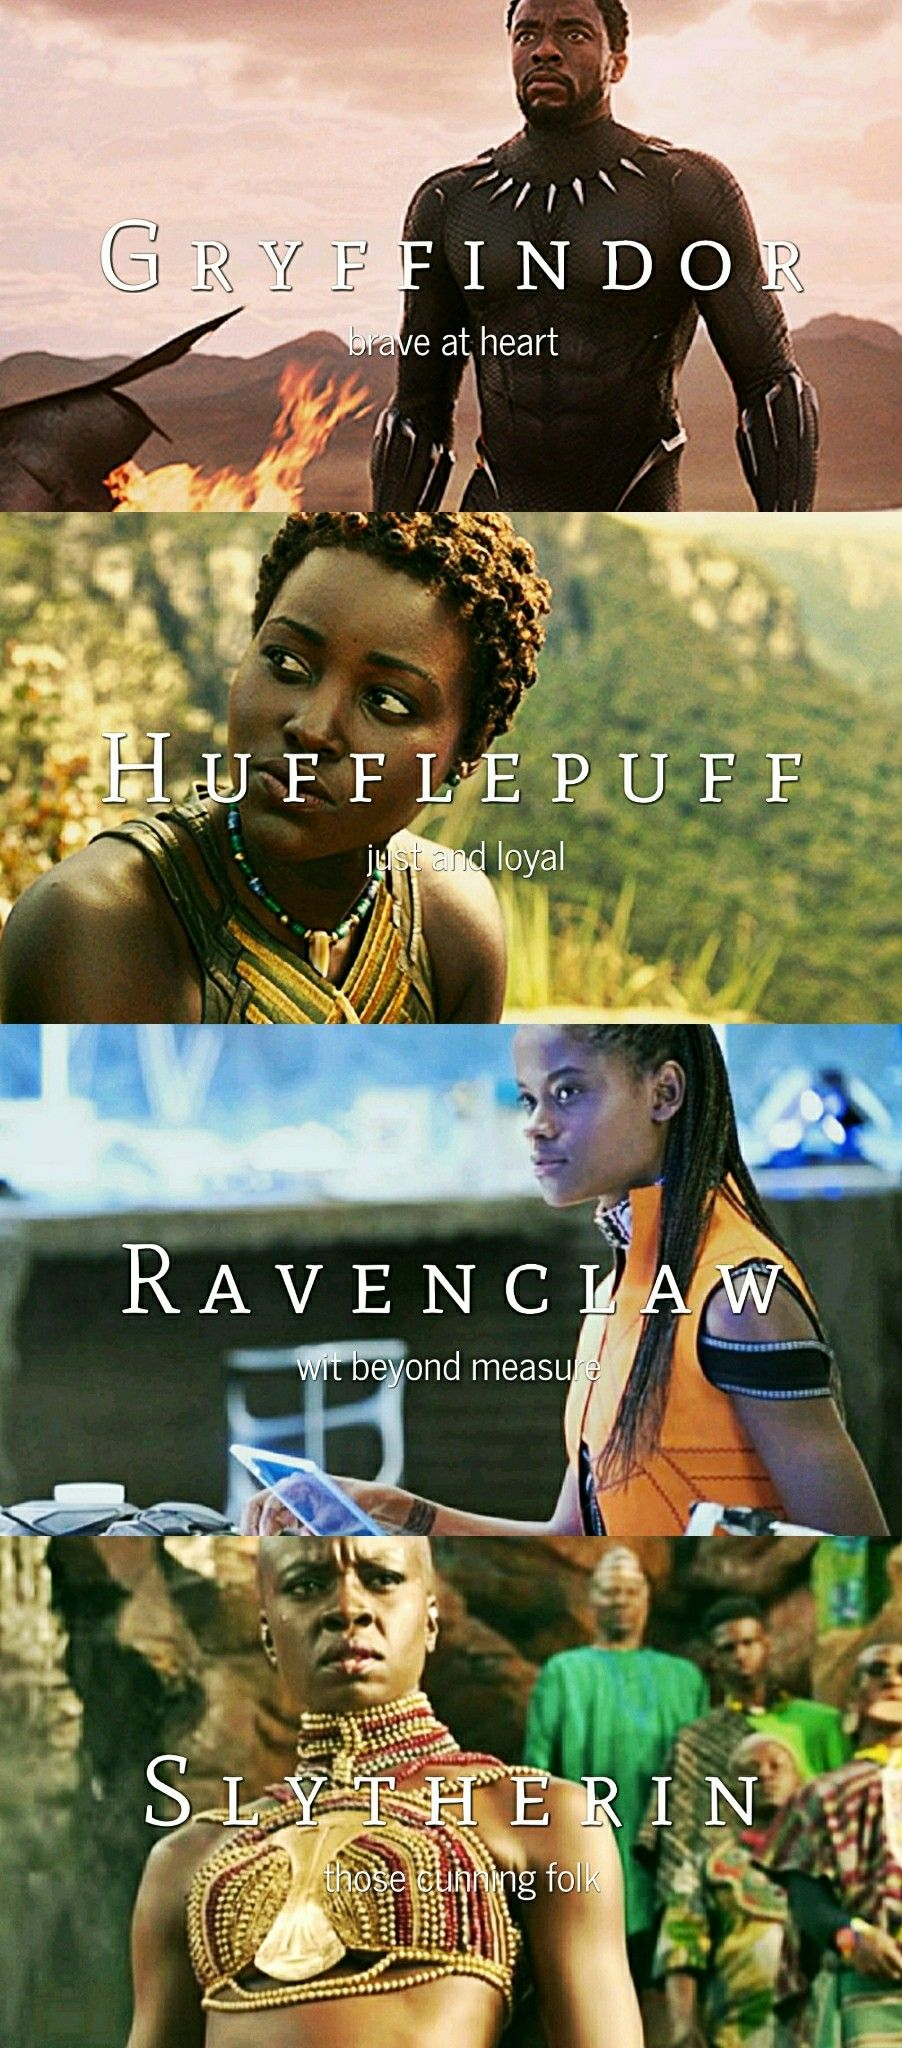 Black Panther Characters + Hogwarts Houses (Yes I agree that Nakia and Okoye could easily be switched. However, Hufflepuff is more than just loyalty and I stand by the fact that Nakia would be a just ruler who wants what is best for all her people even those outside of Wakanda.)